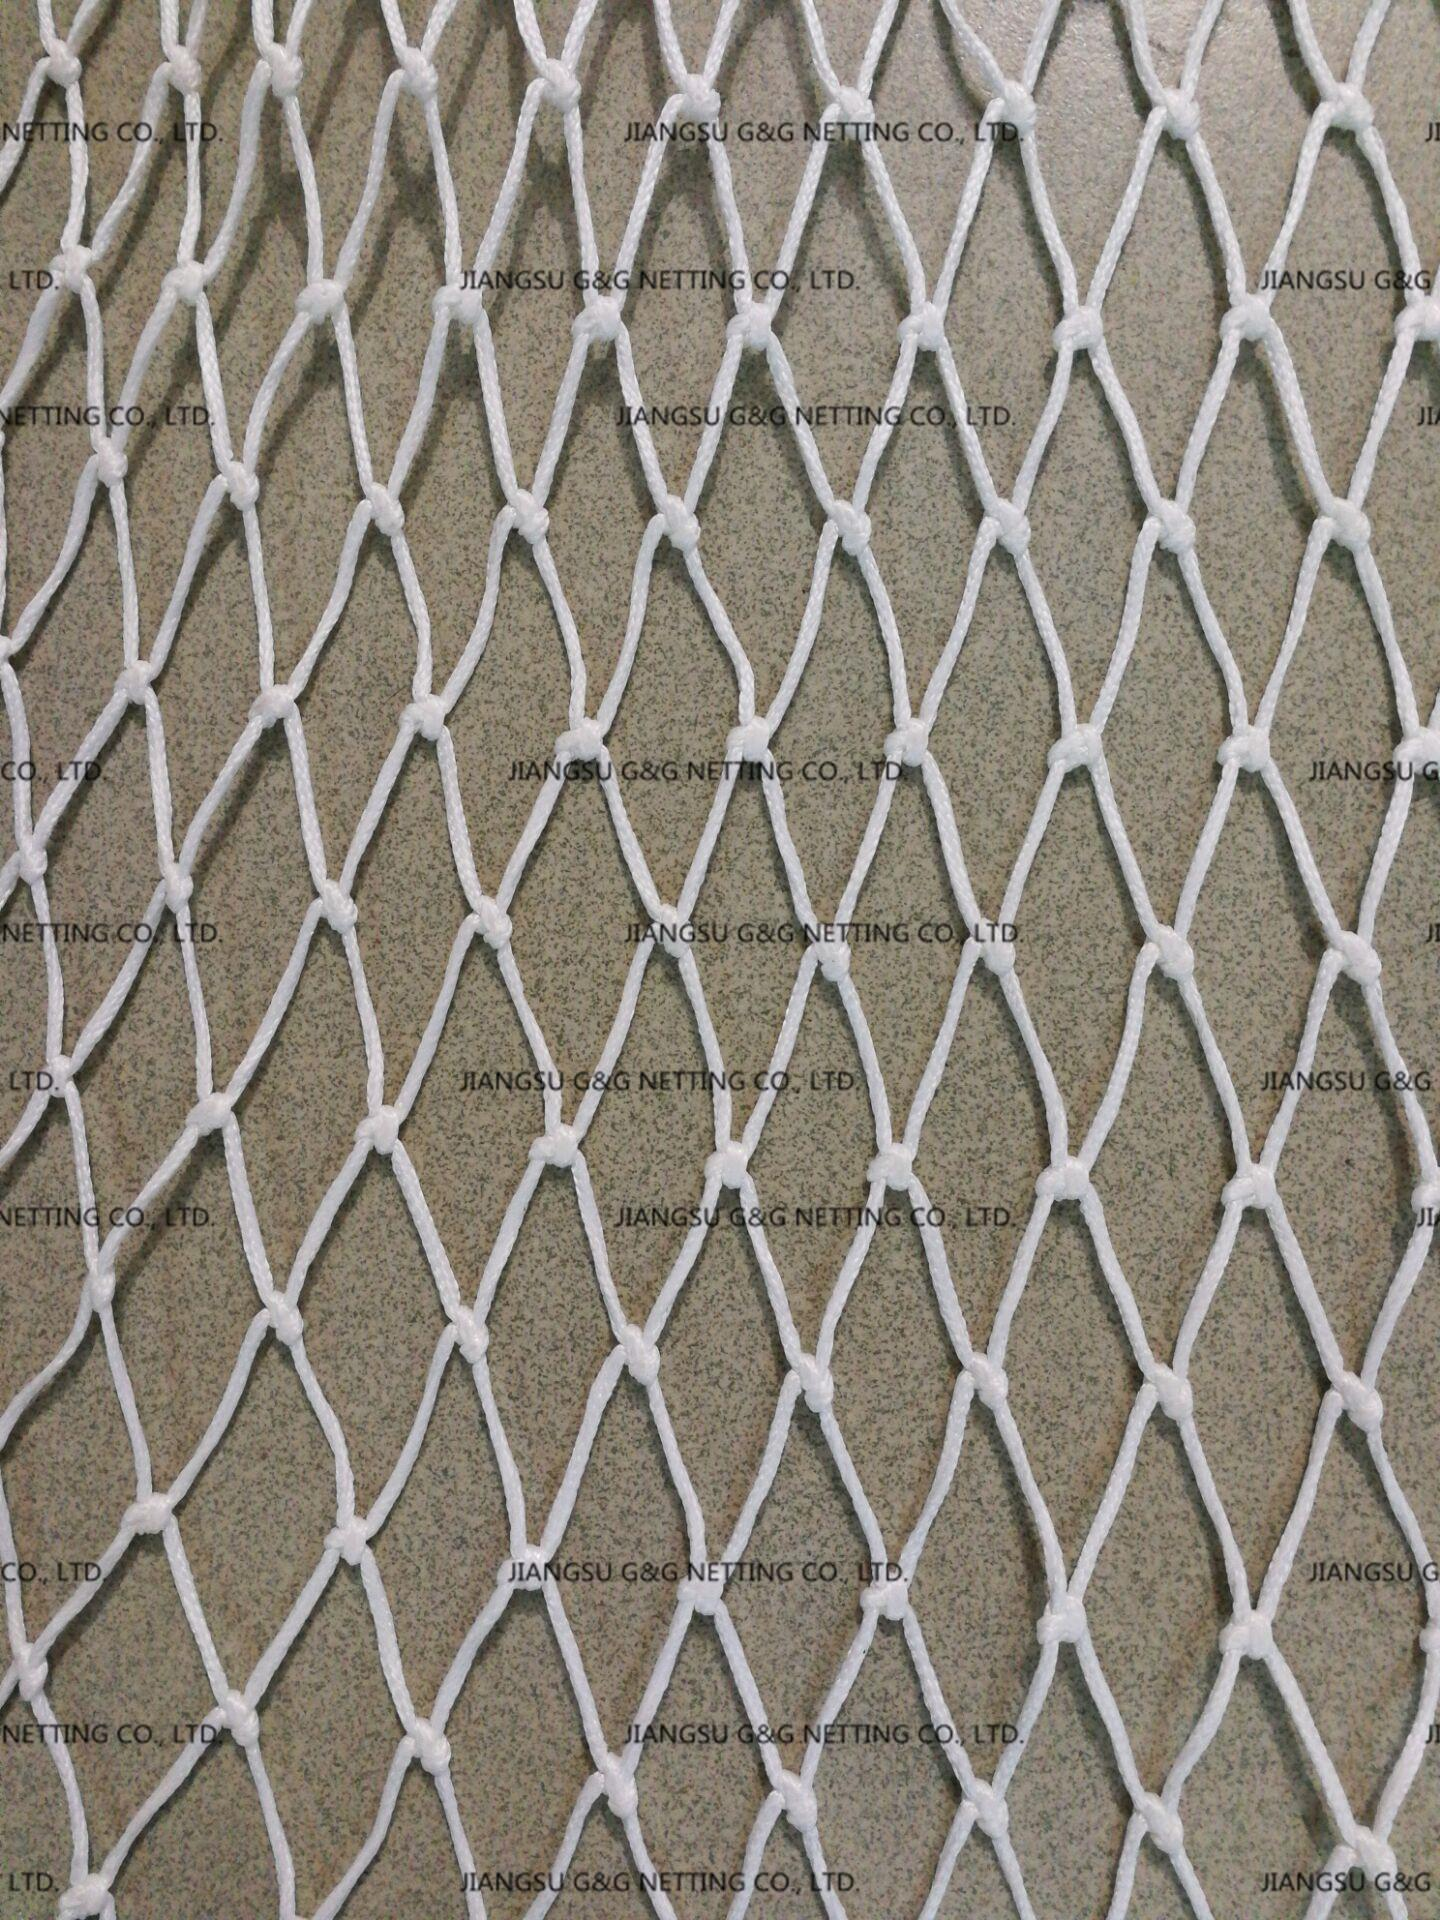 BRAIDED HMPE KNOTTED NETTING 2